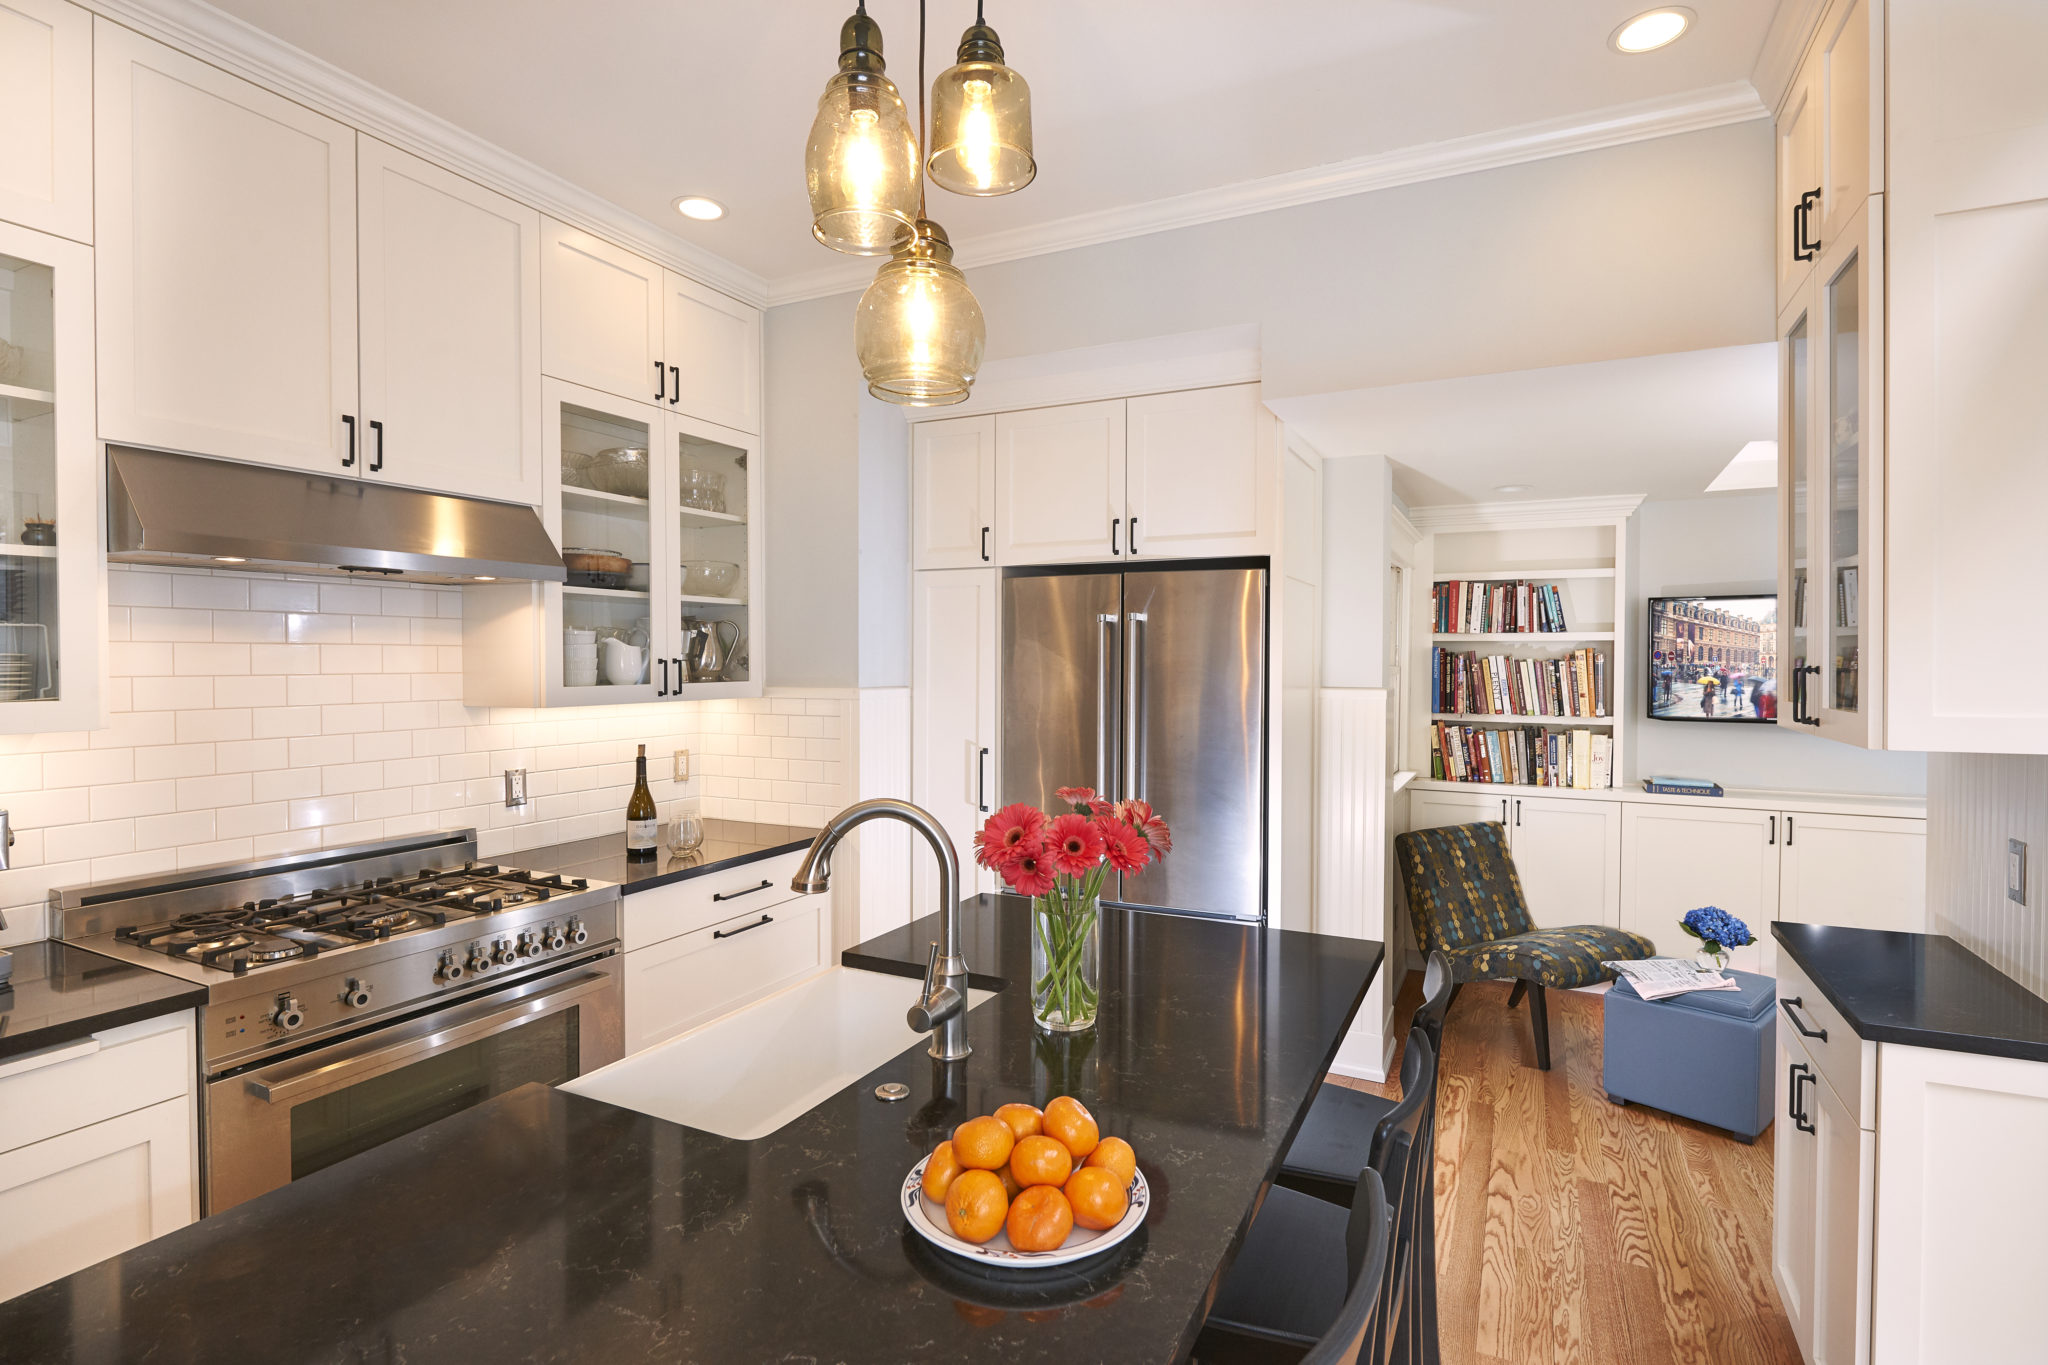 finished photos of the queen anne kitchen remodel cta design builders